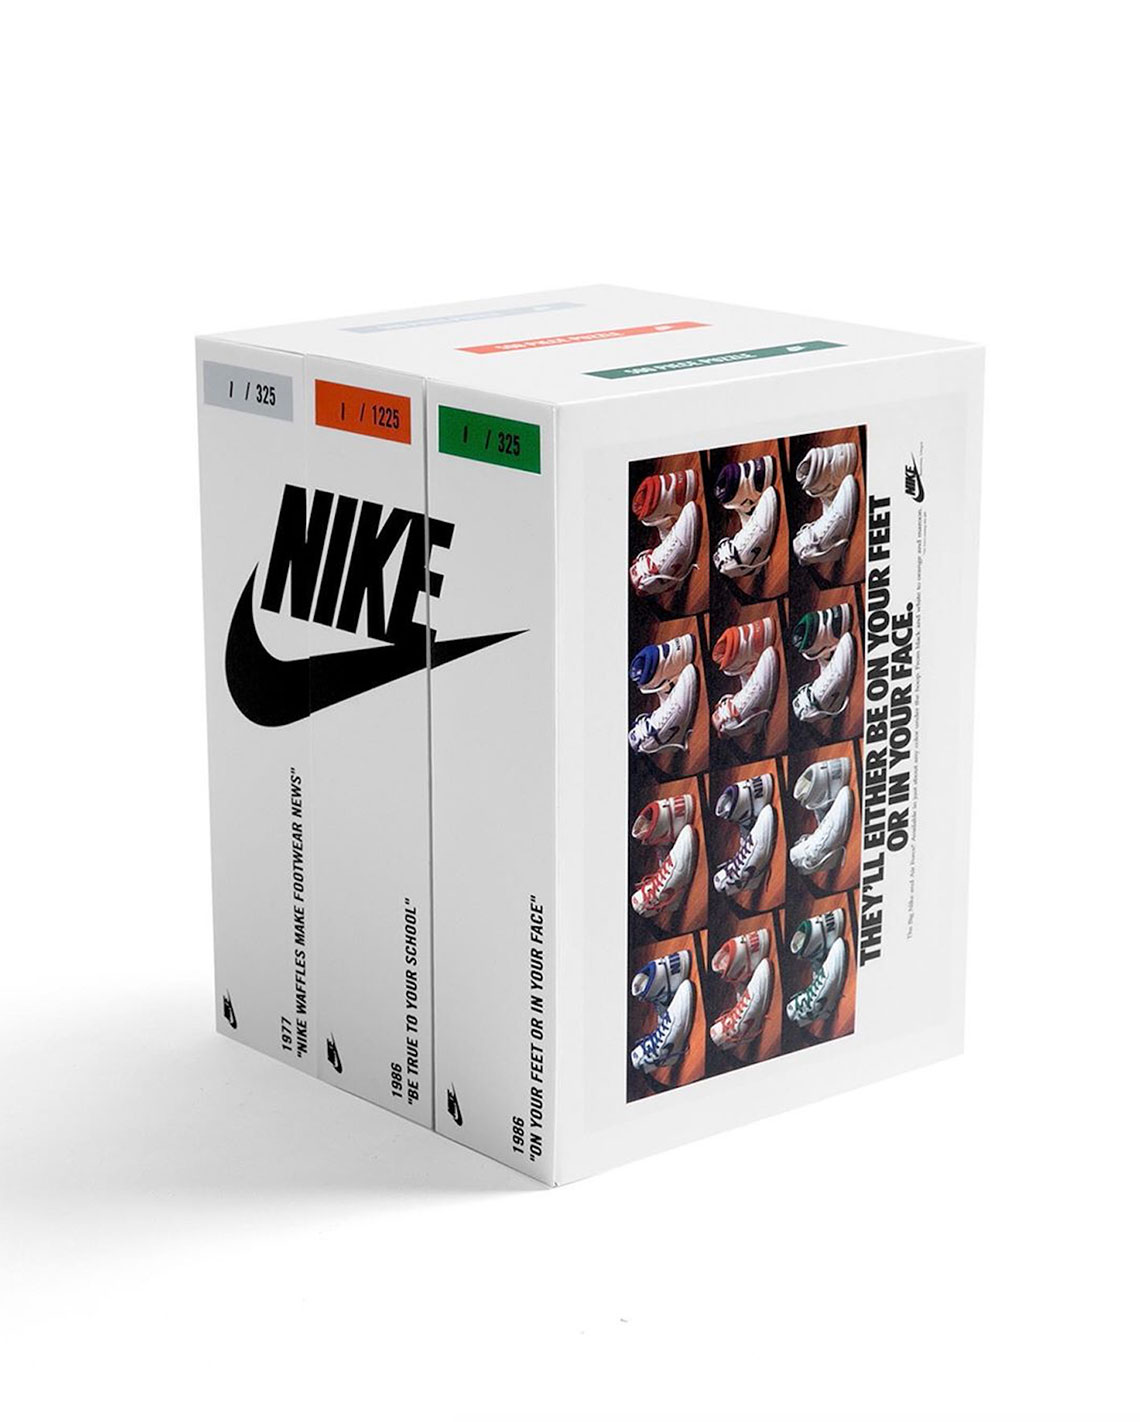 Nike Ad Jigsaw Puzzles - How To Get | SneakerNews.com